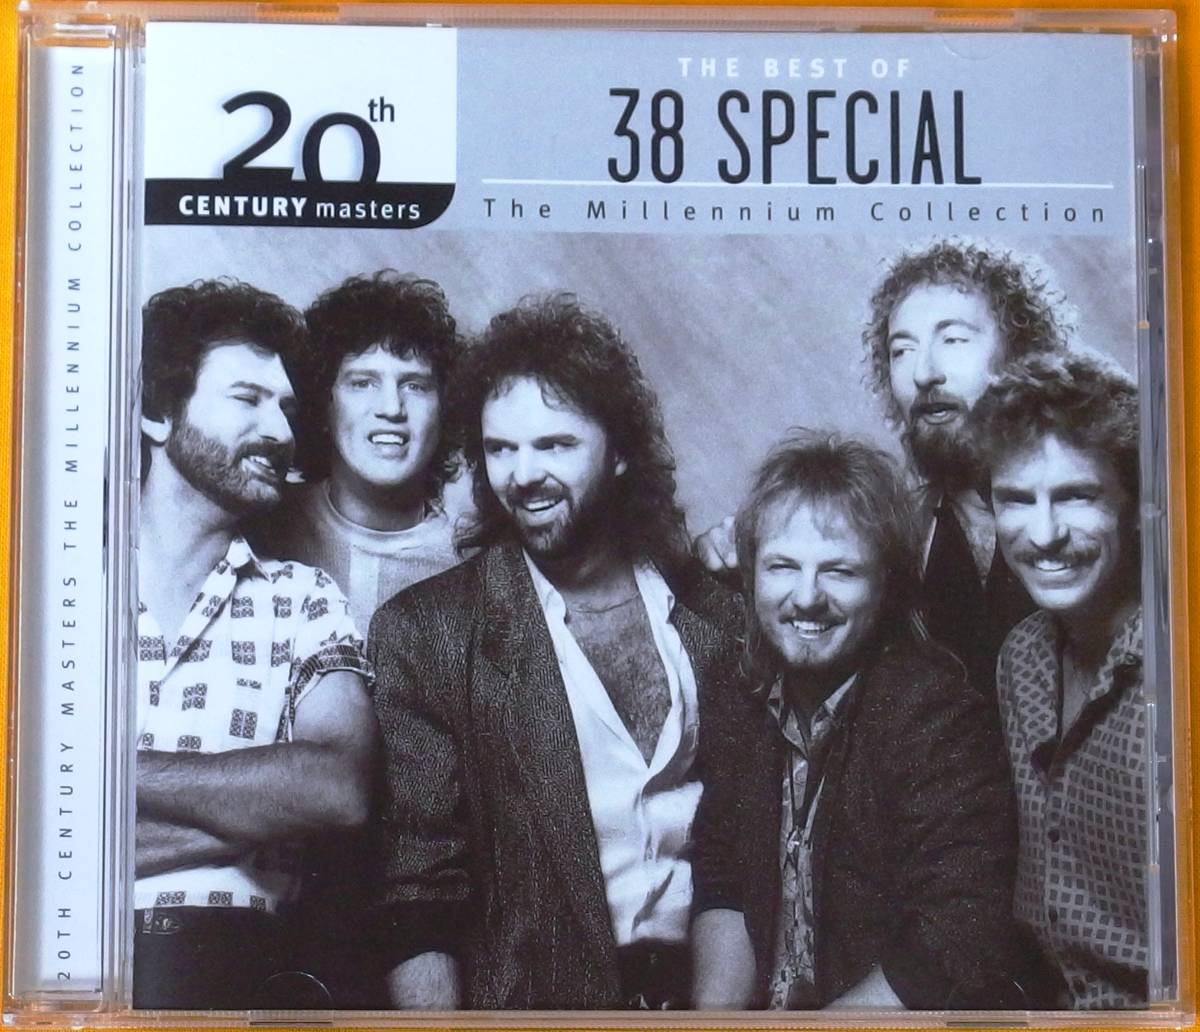 38 Special, The Best of: Millennium Collection 20th Century Masters 輸入盤CD中古美品